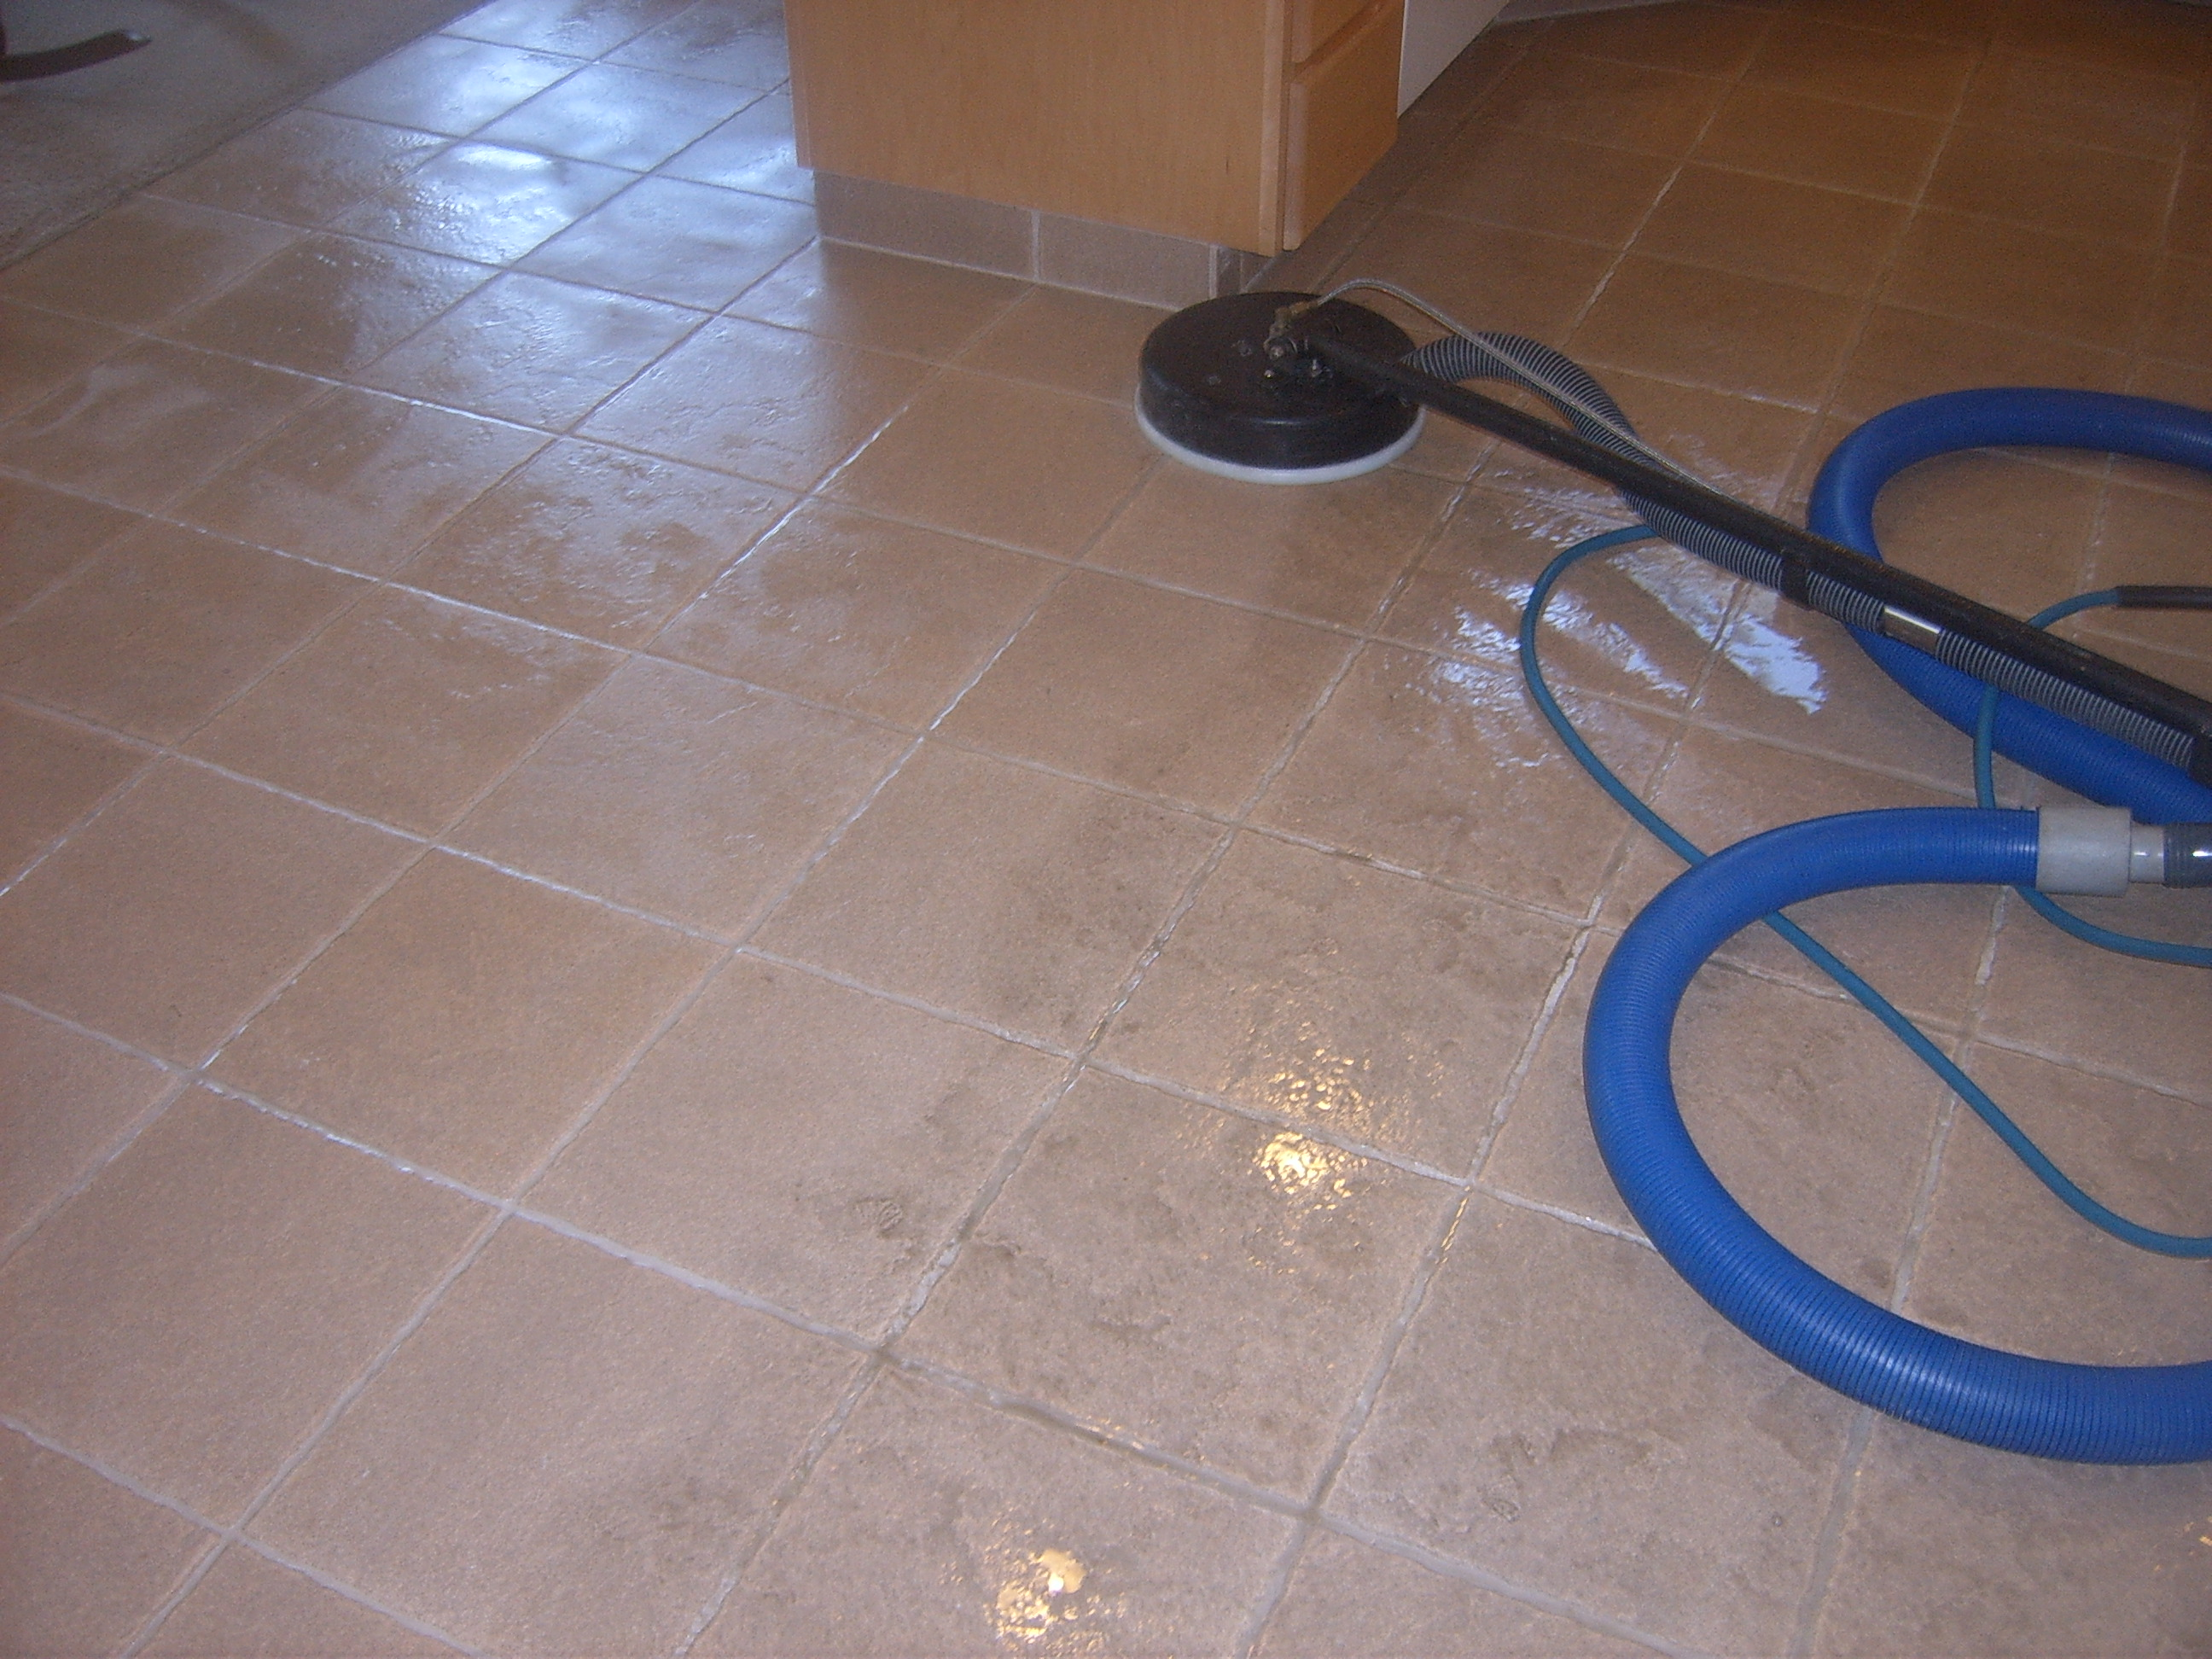 Rainbow Carpet Cleaning Ceramic Tile Grout Cleaning - Easiest way to mop tile floors